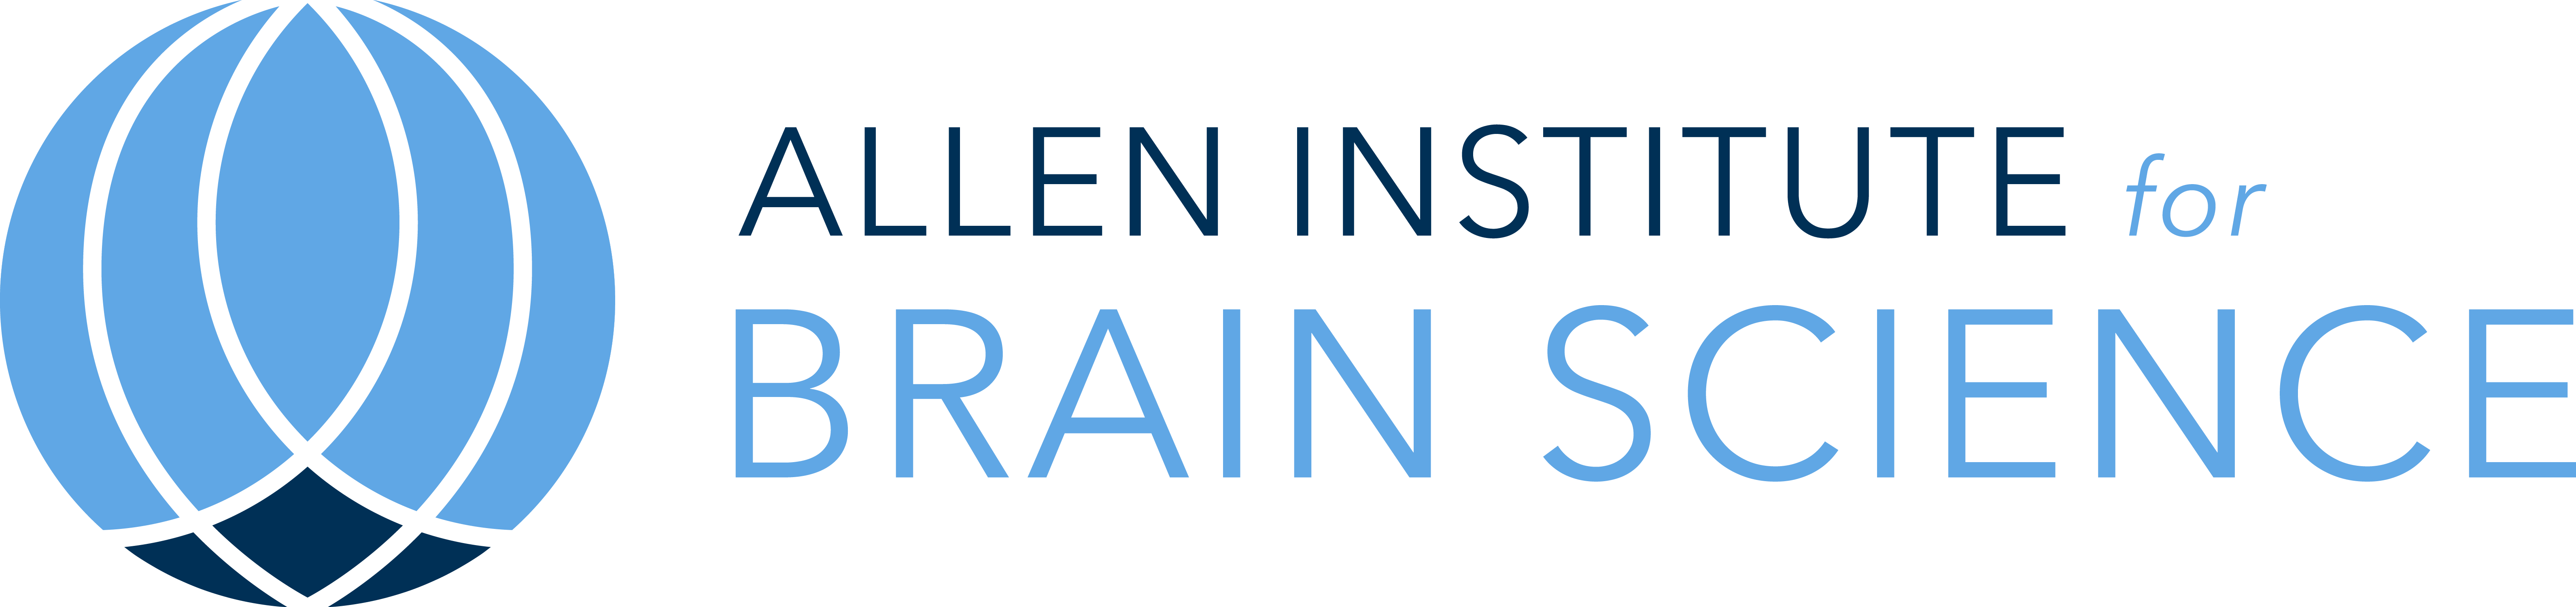 Allen Institute for Brain Science logo